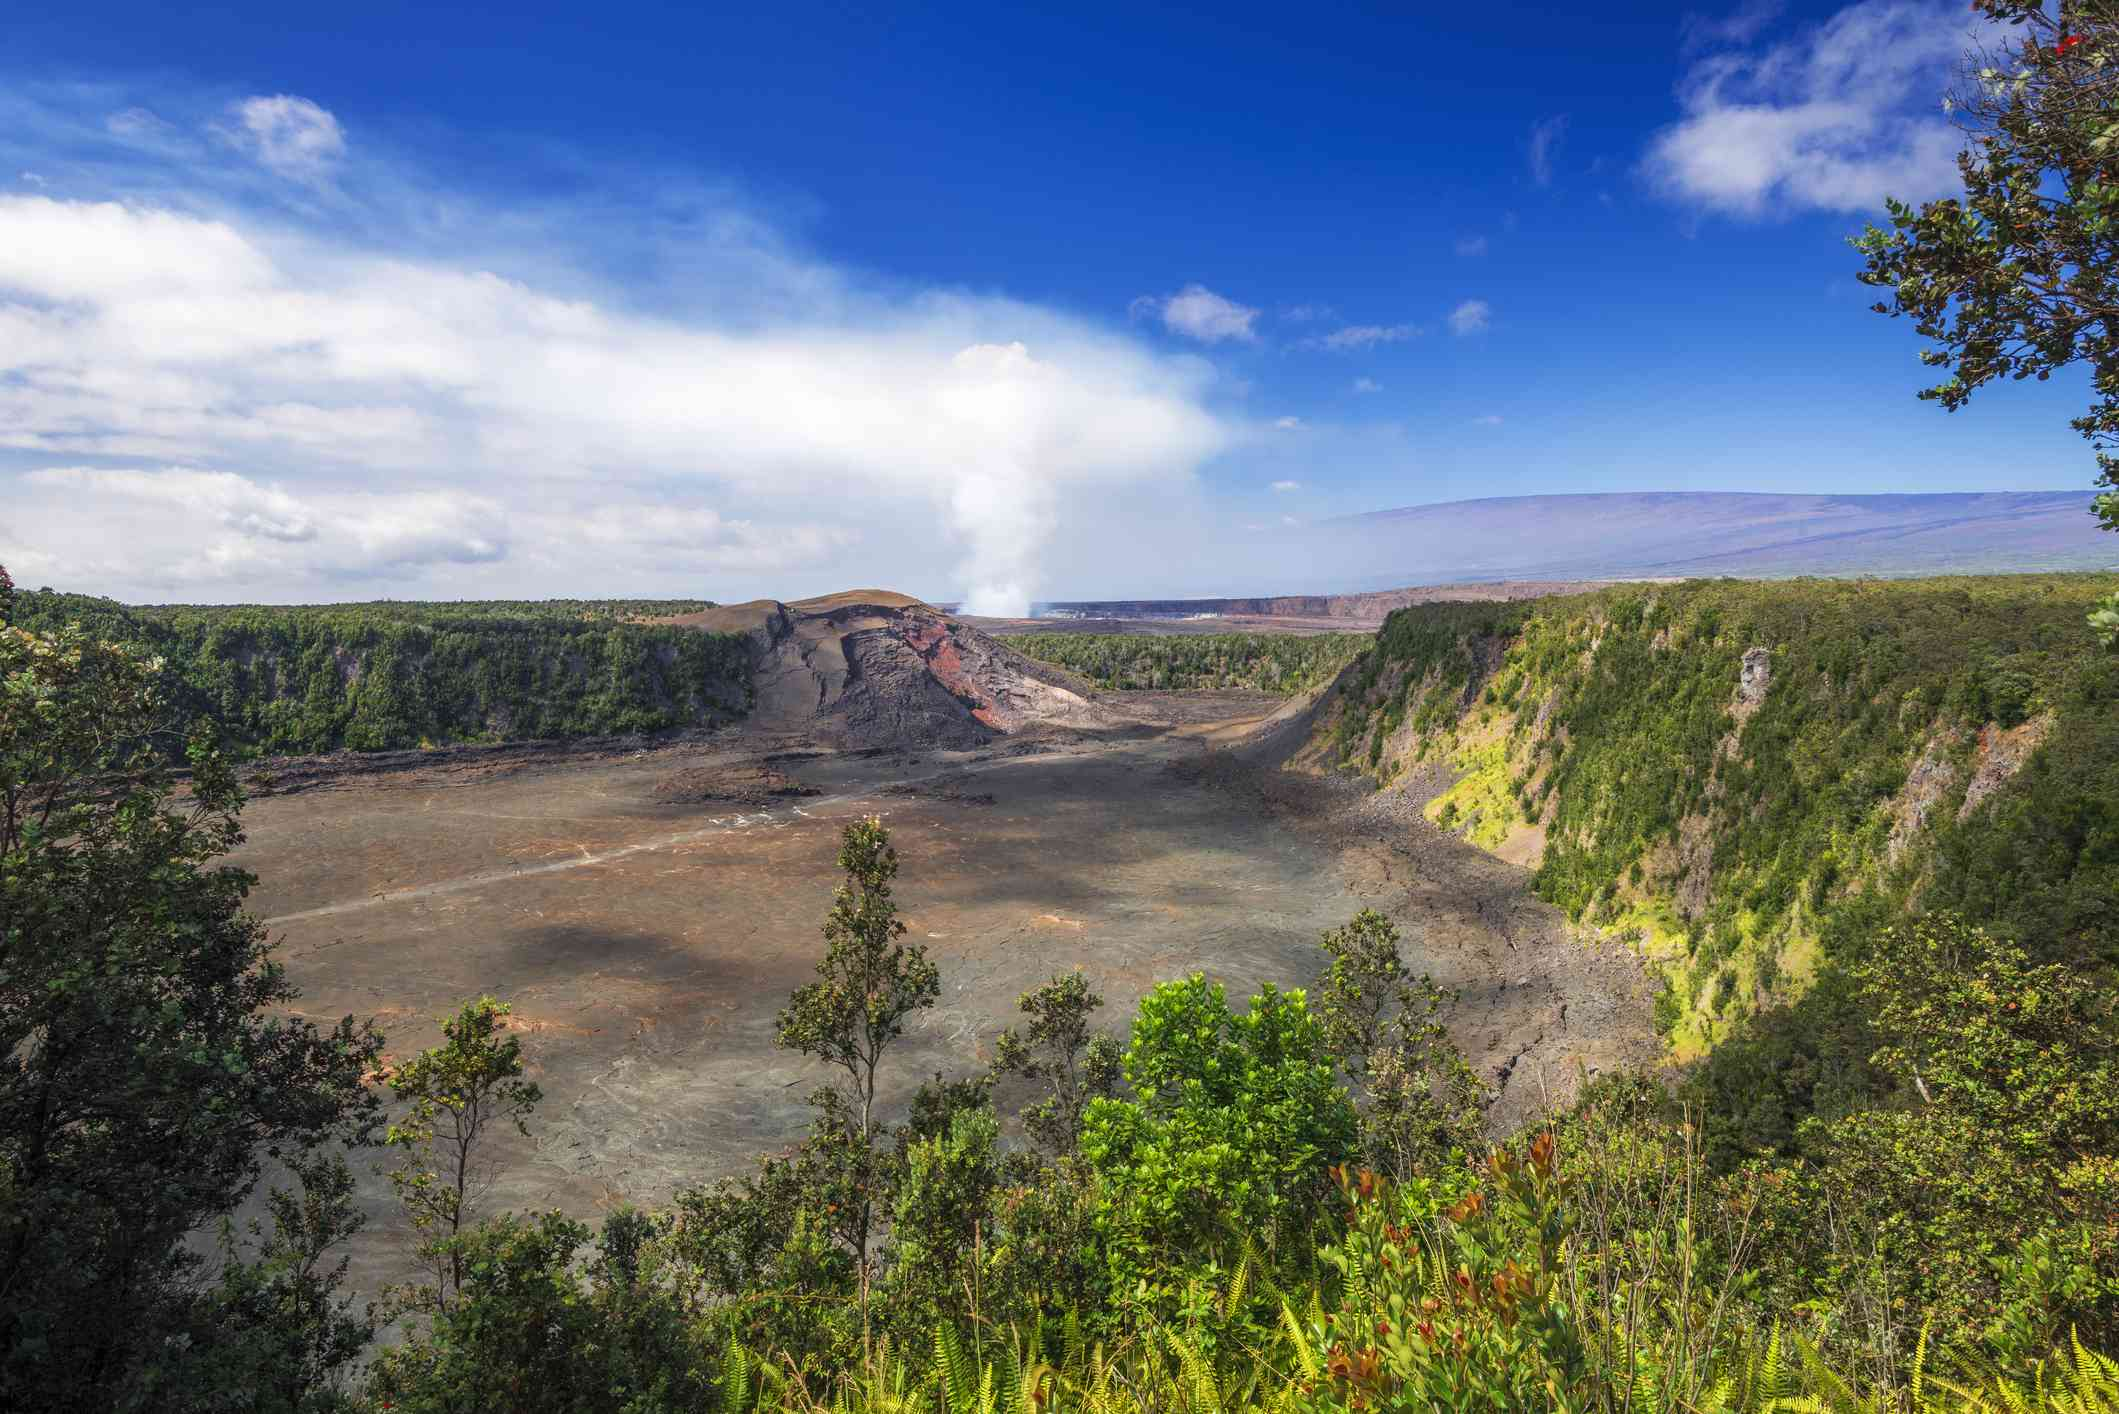 Landscape with Kilauea Iki and steam from Halemaumau Crater